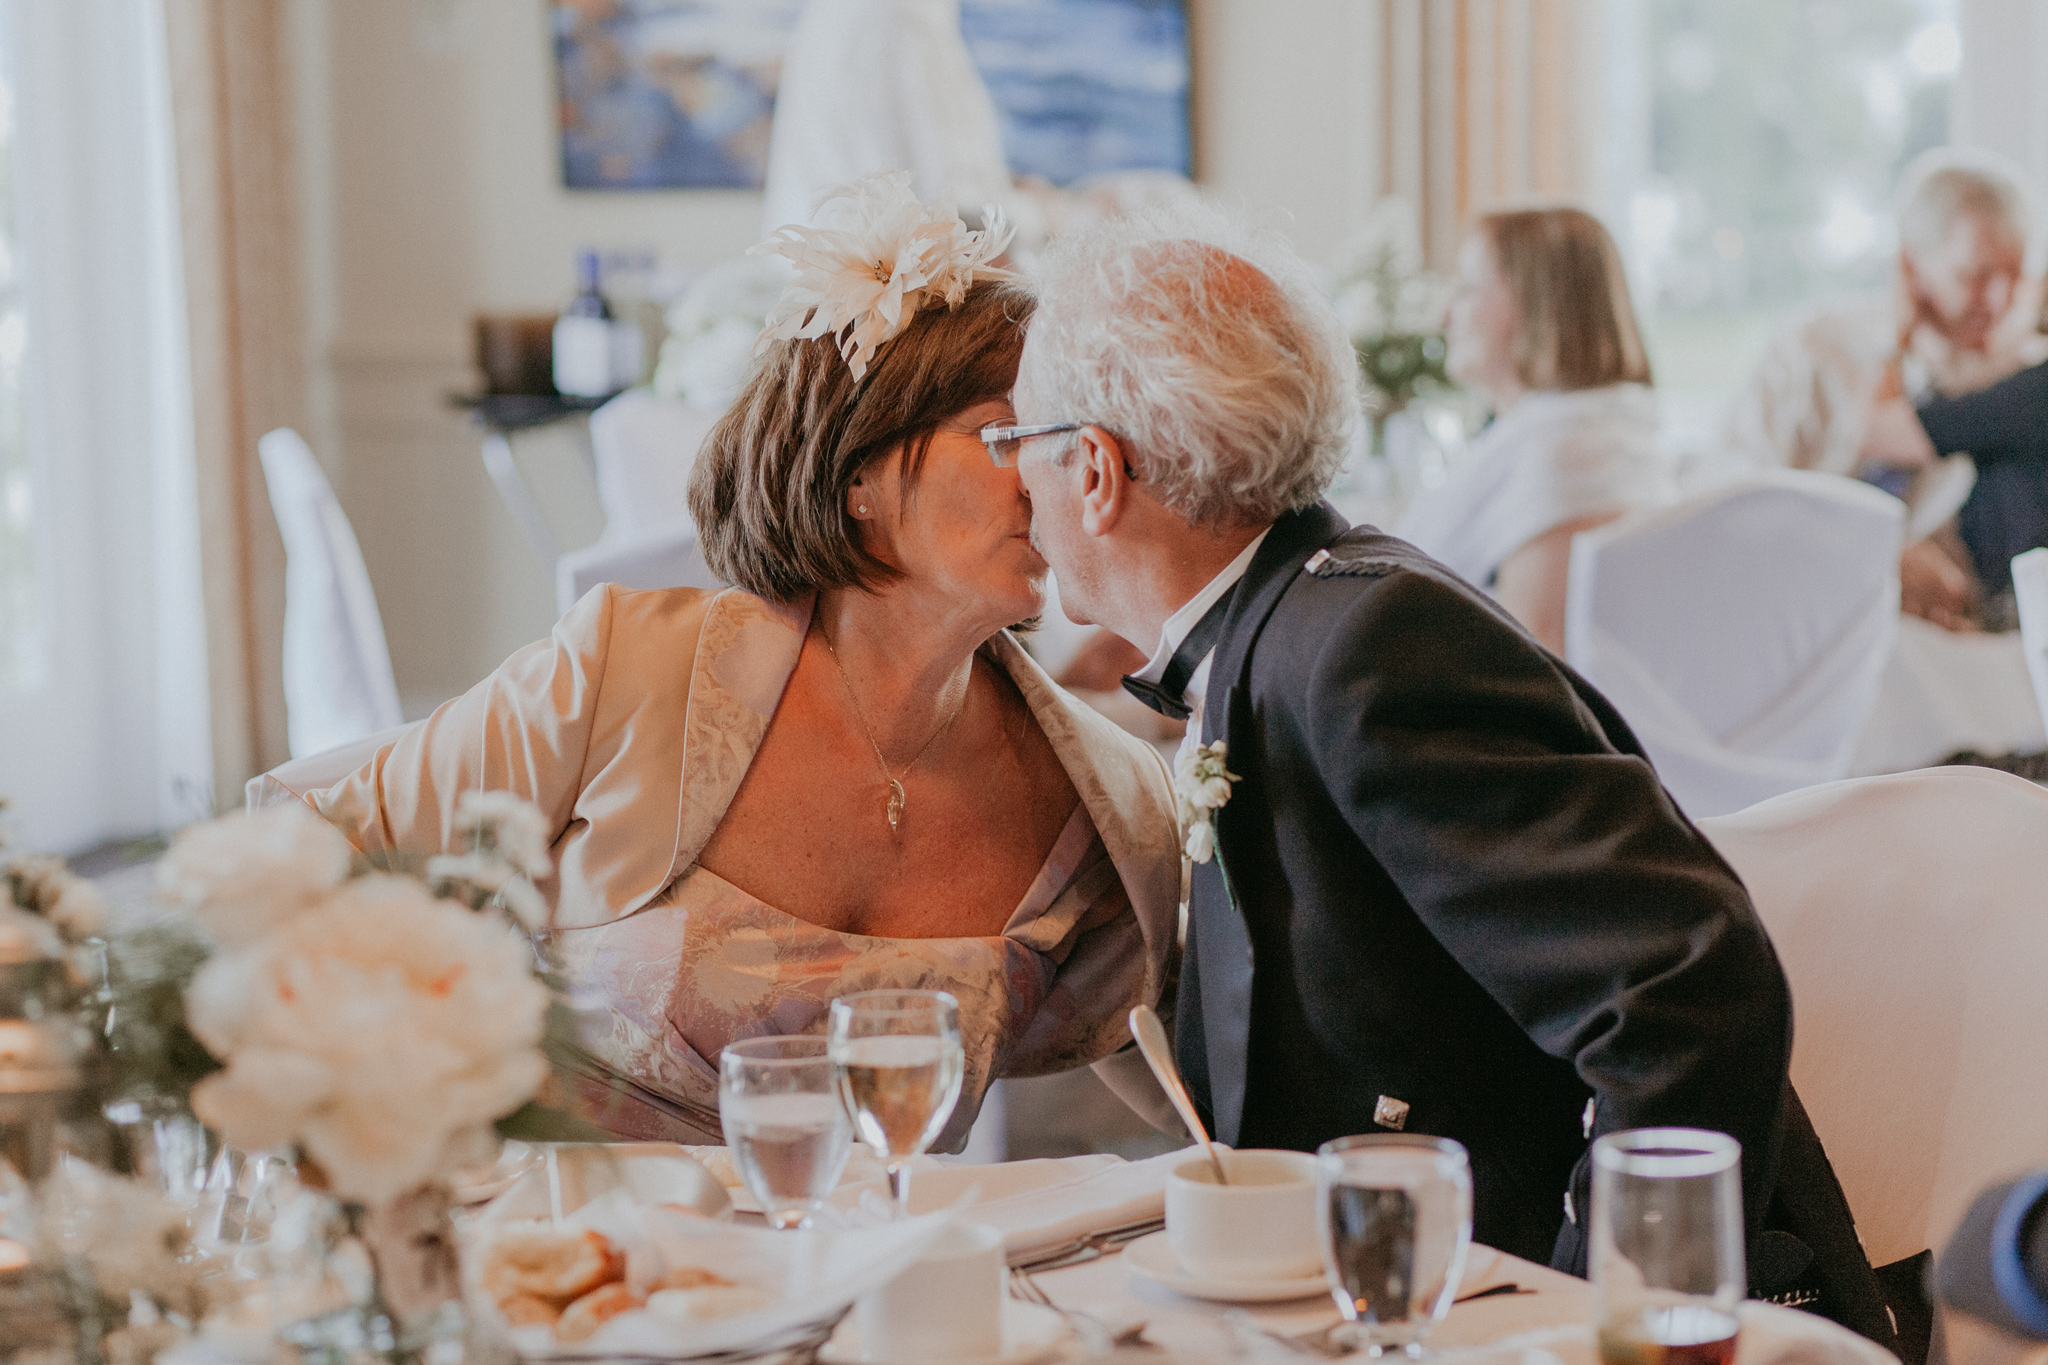 Candid photo of kiss between mother and father of the groom during wedding reception